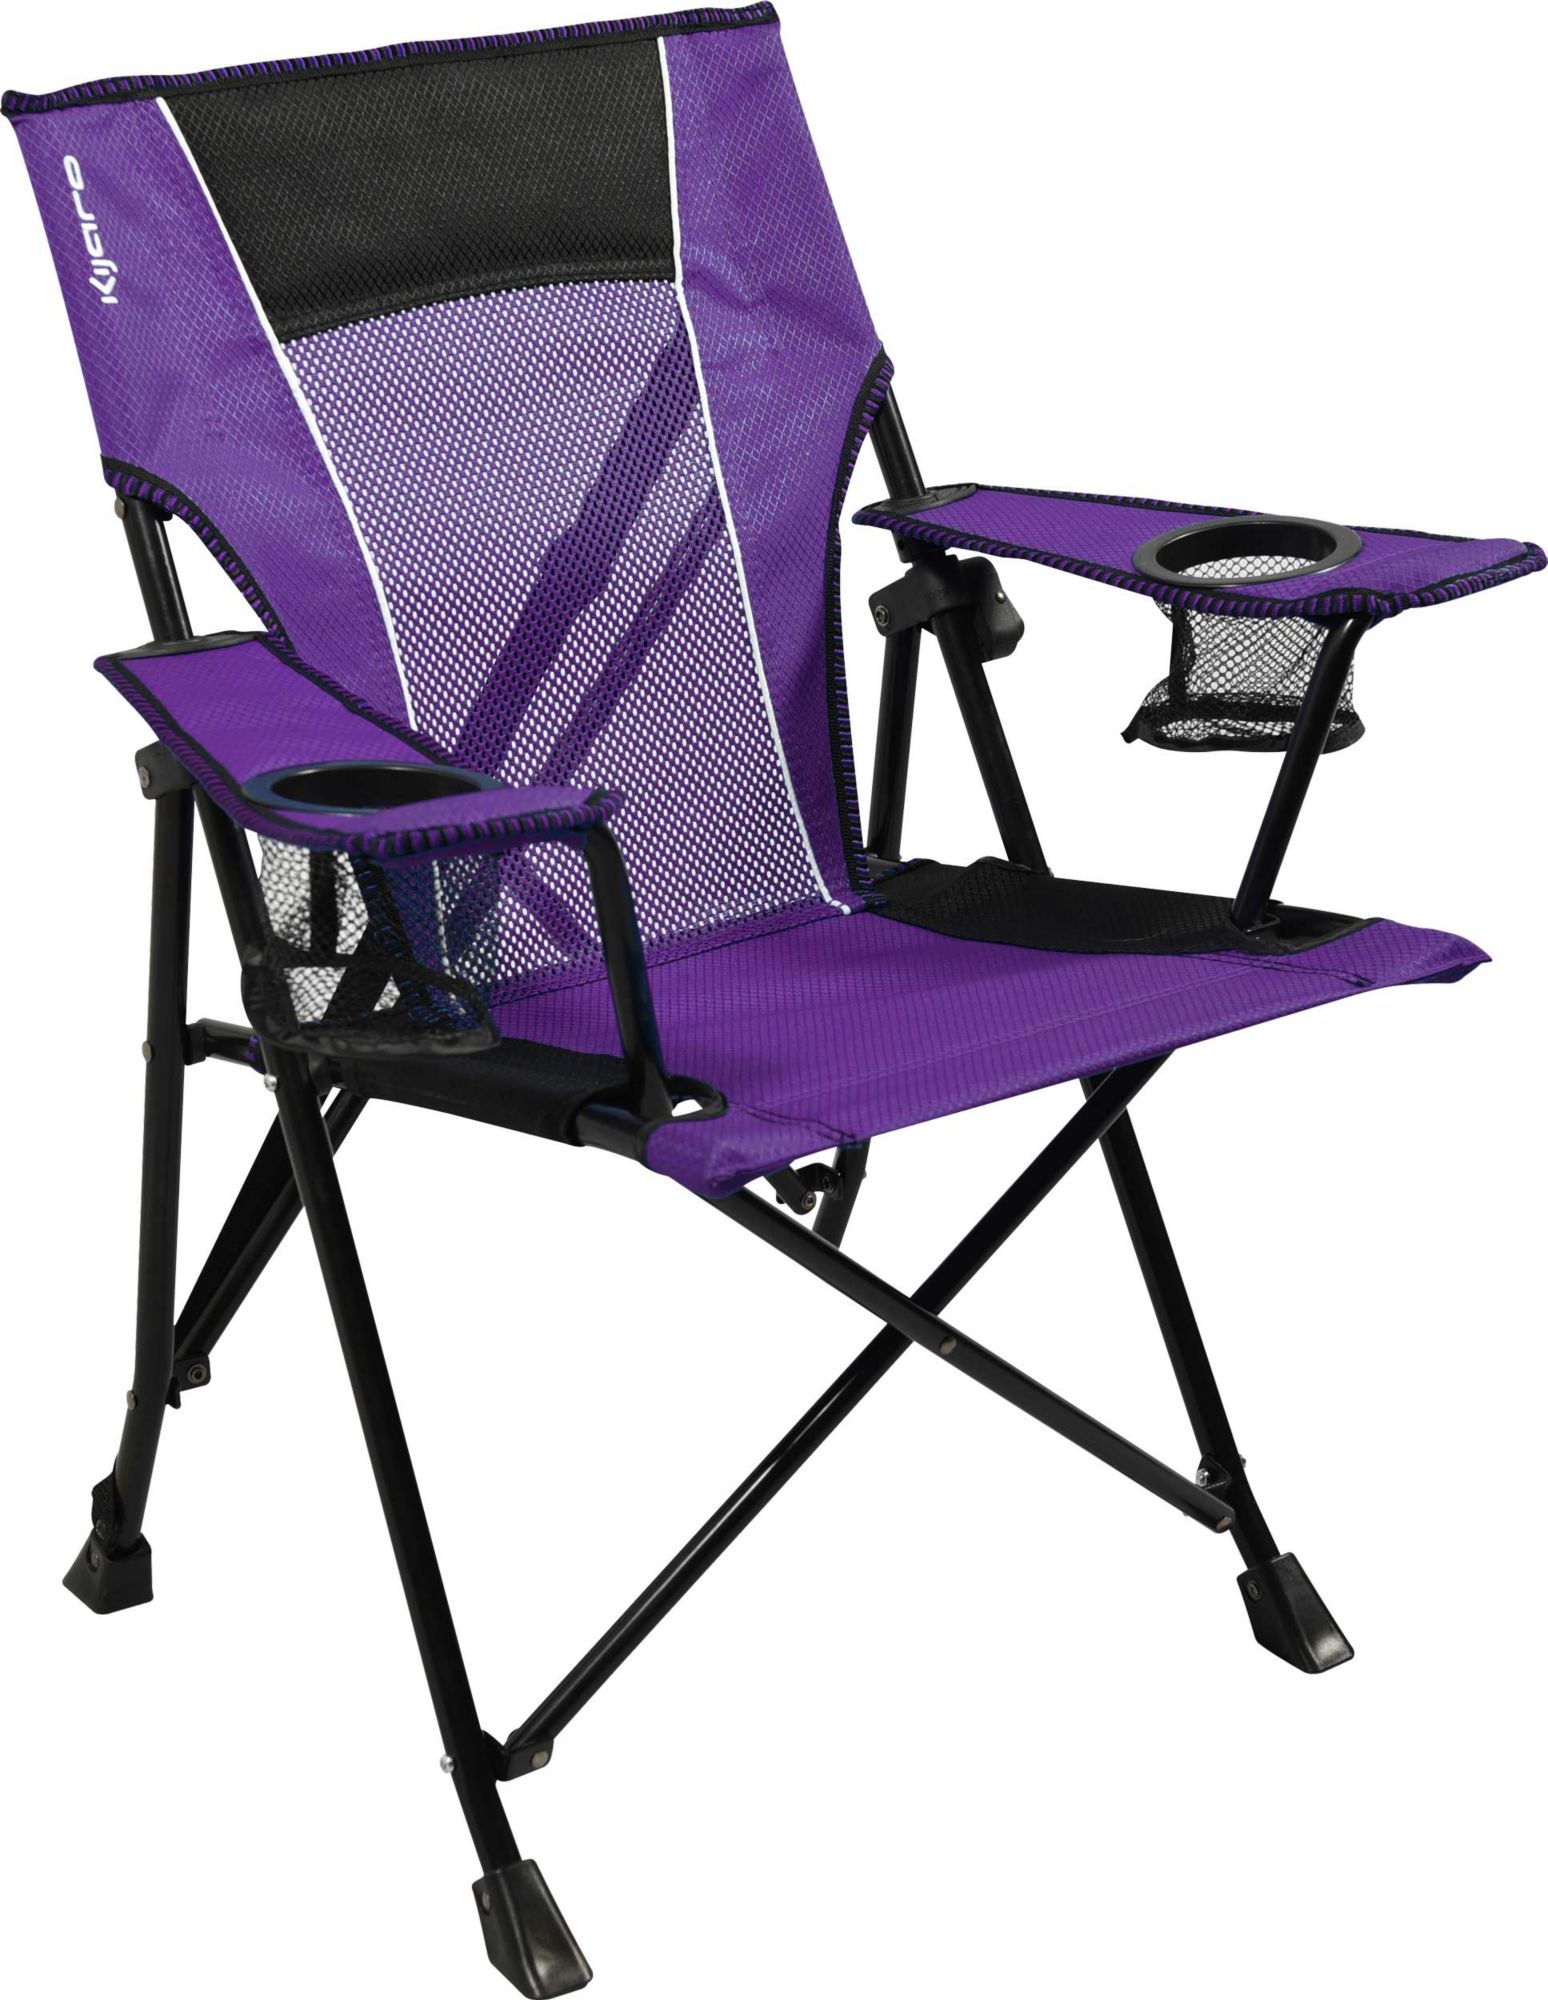 Kijaro Camping Chairs